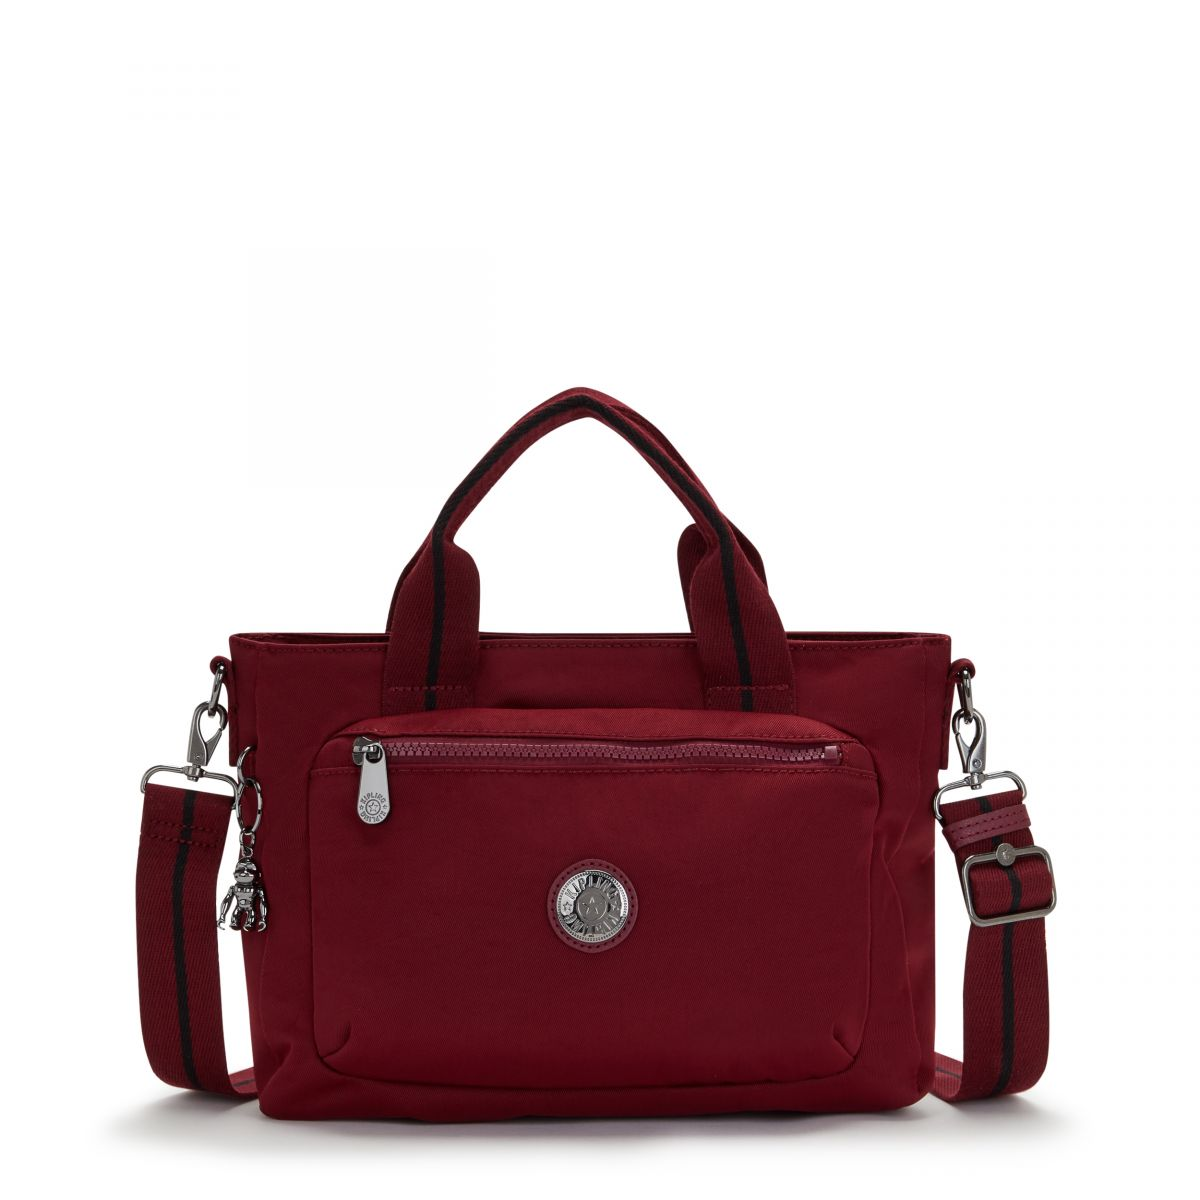 MIHO S BAGS by Kipling - Front view